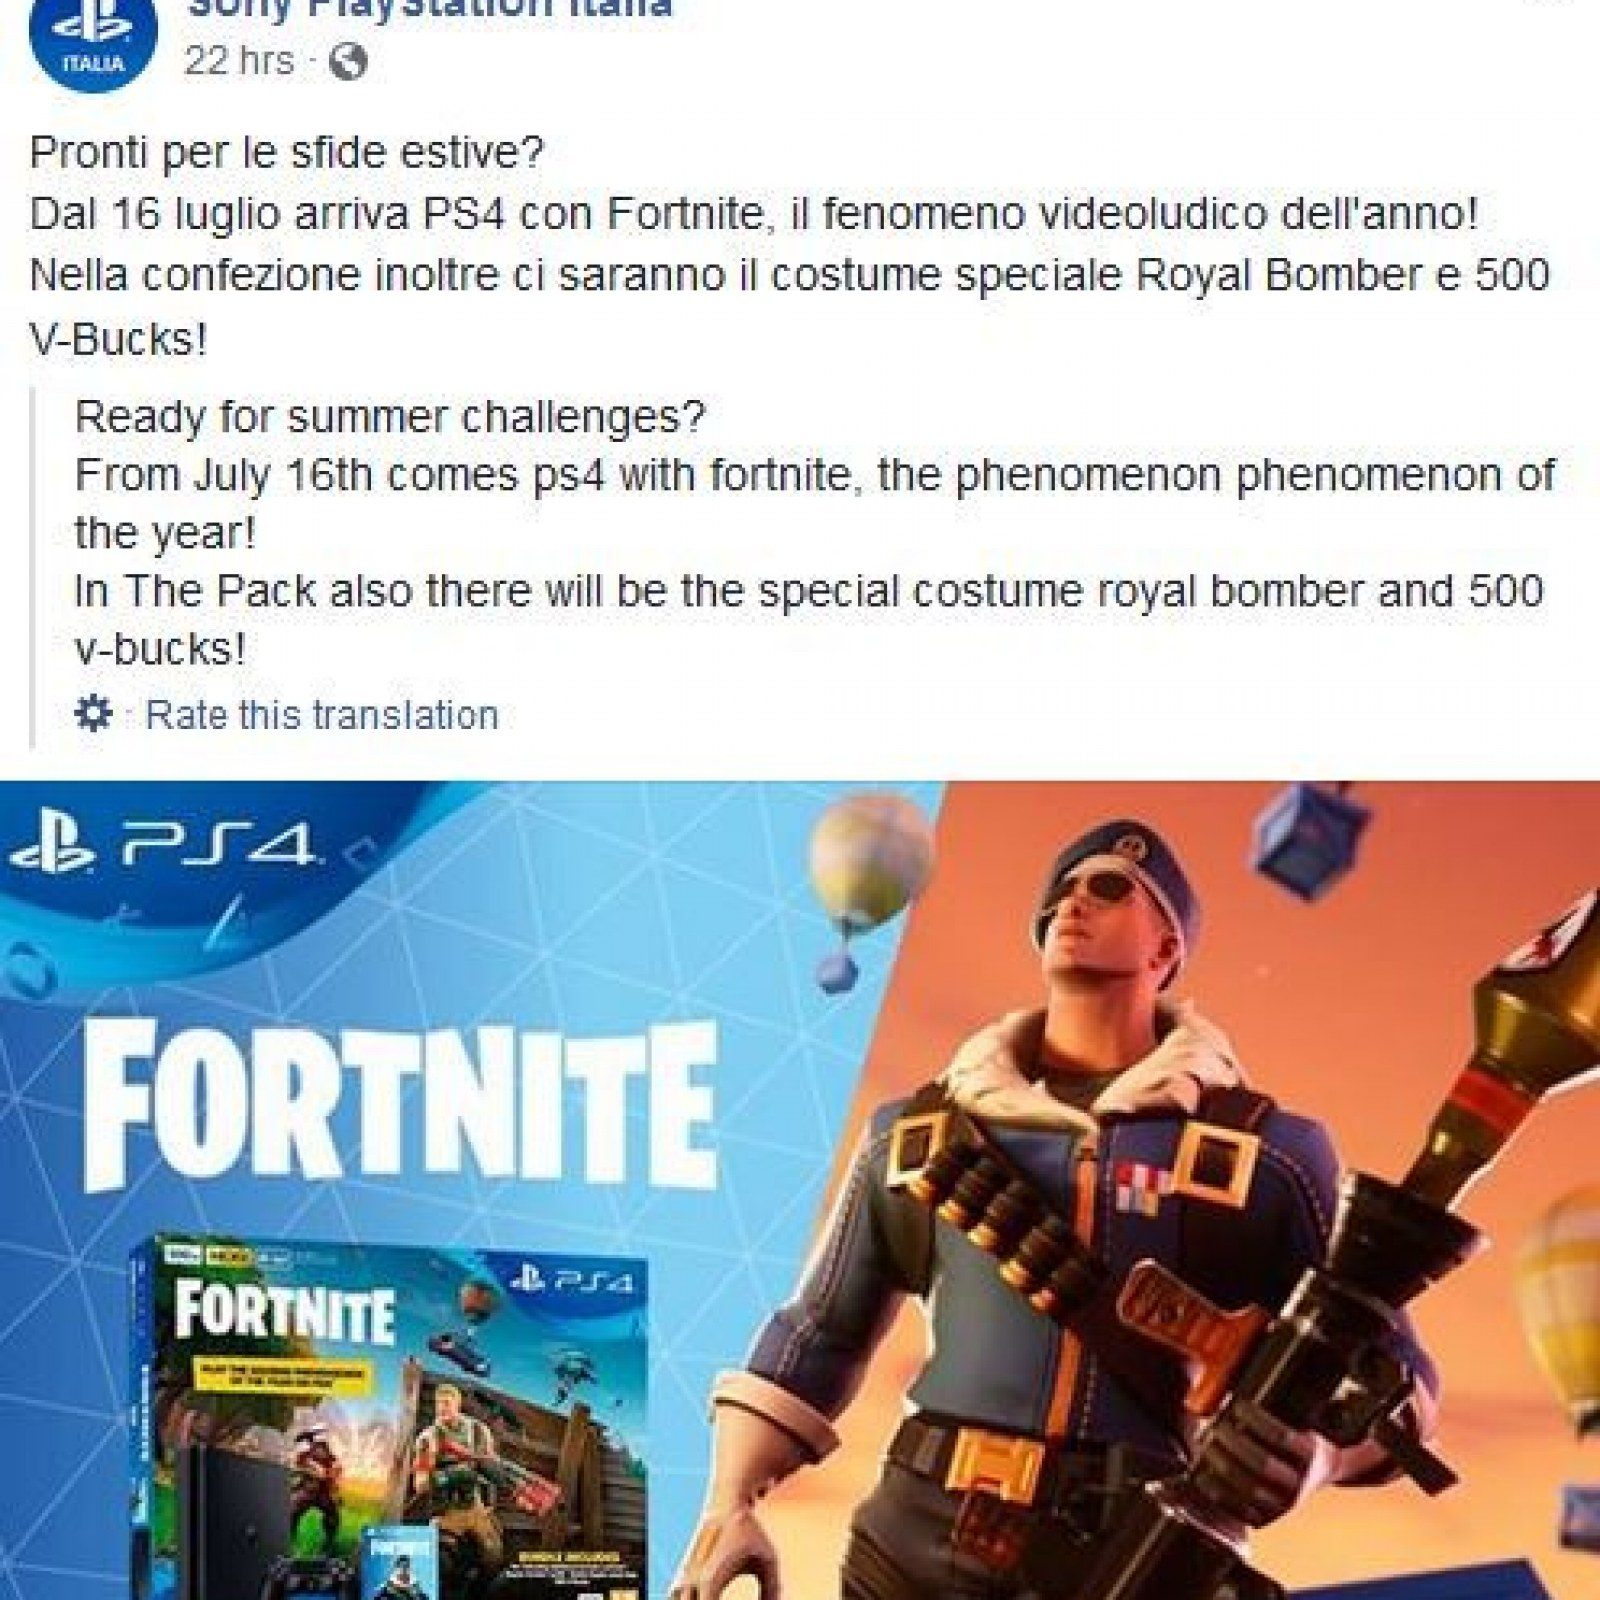 Fortnite Ps4 Bundle Leaks Includes 500 V Bucks Royale Bomber Skin